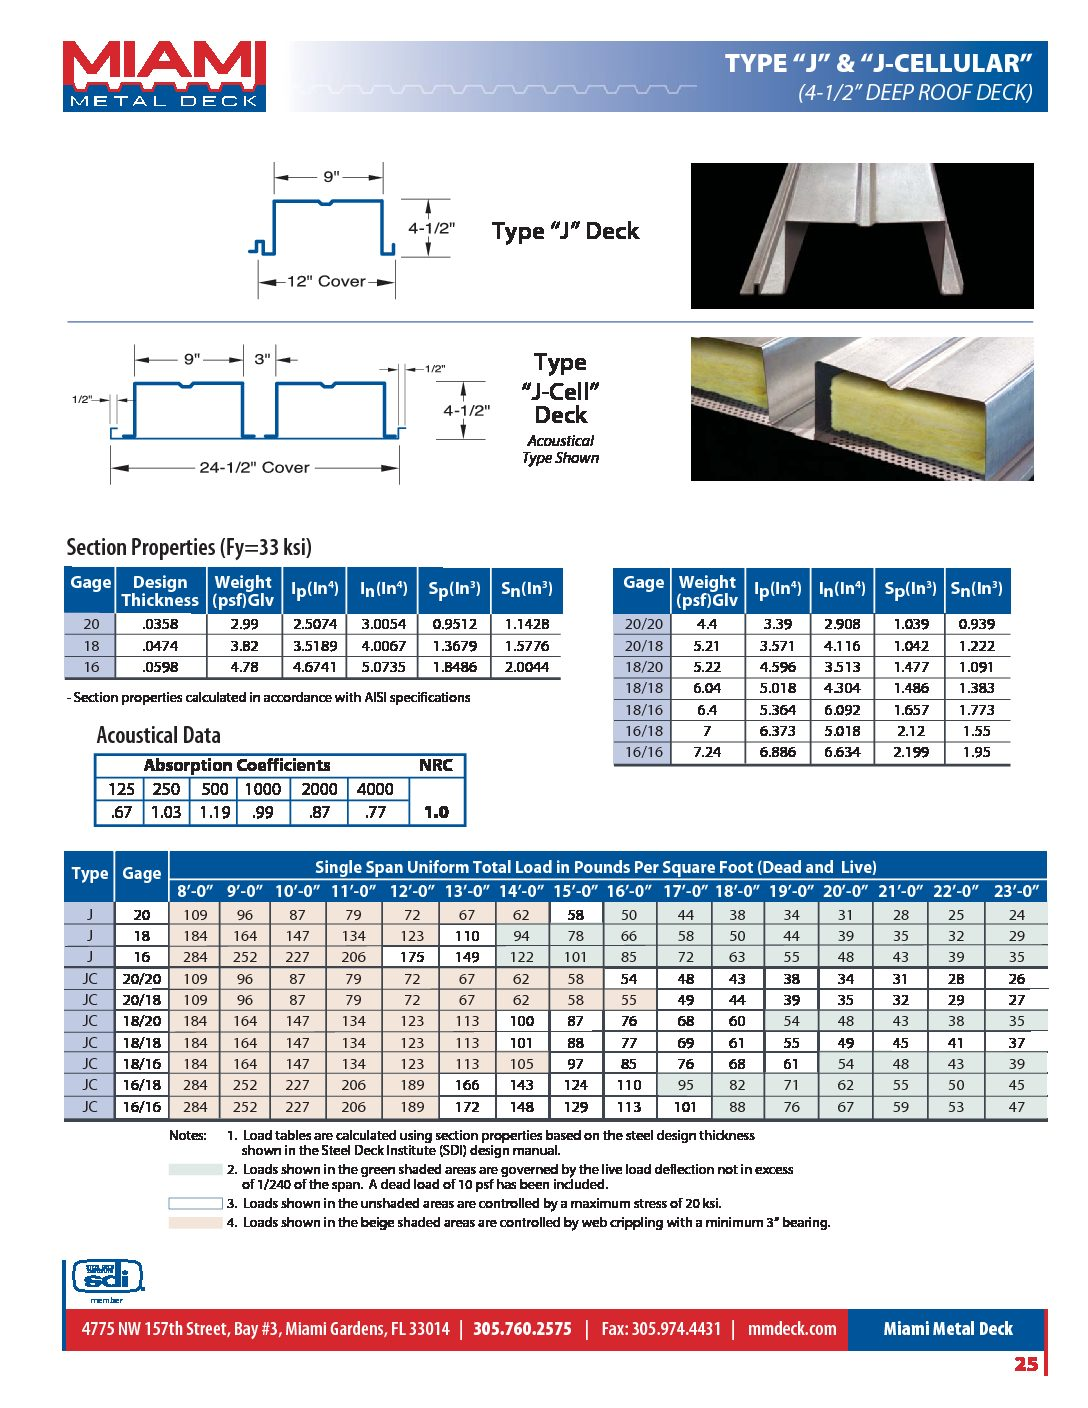 Type J Cellular Deck Tables and Load-Span Resource Guide